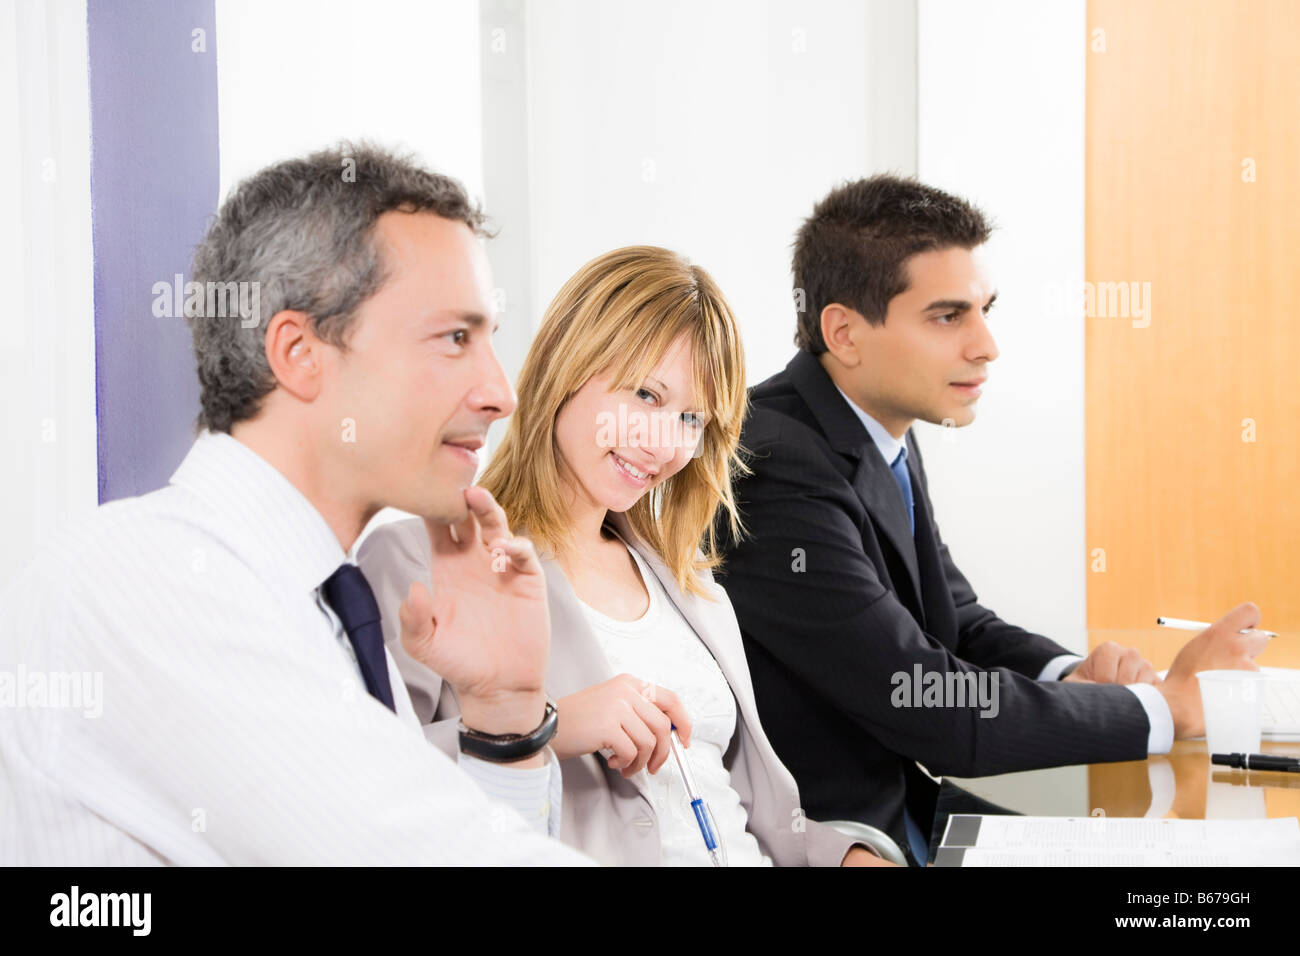 Portrait of business woman among colleagues in meeting - Stock Image